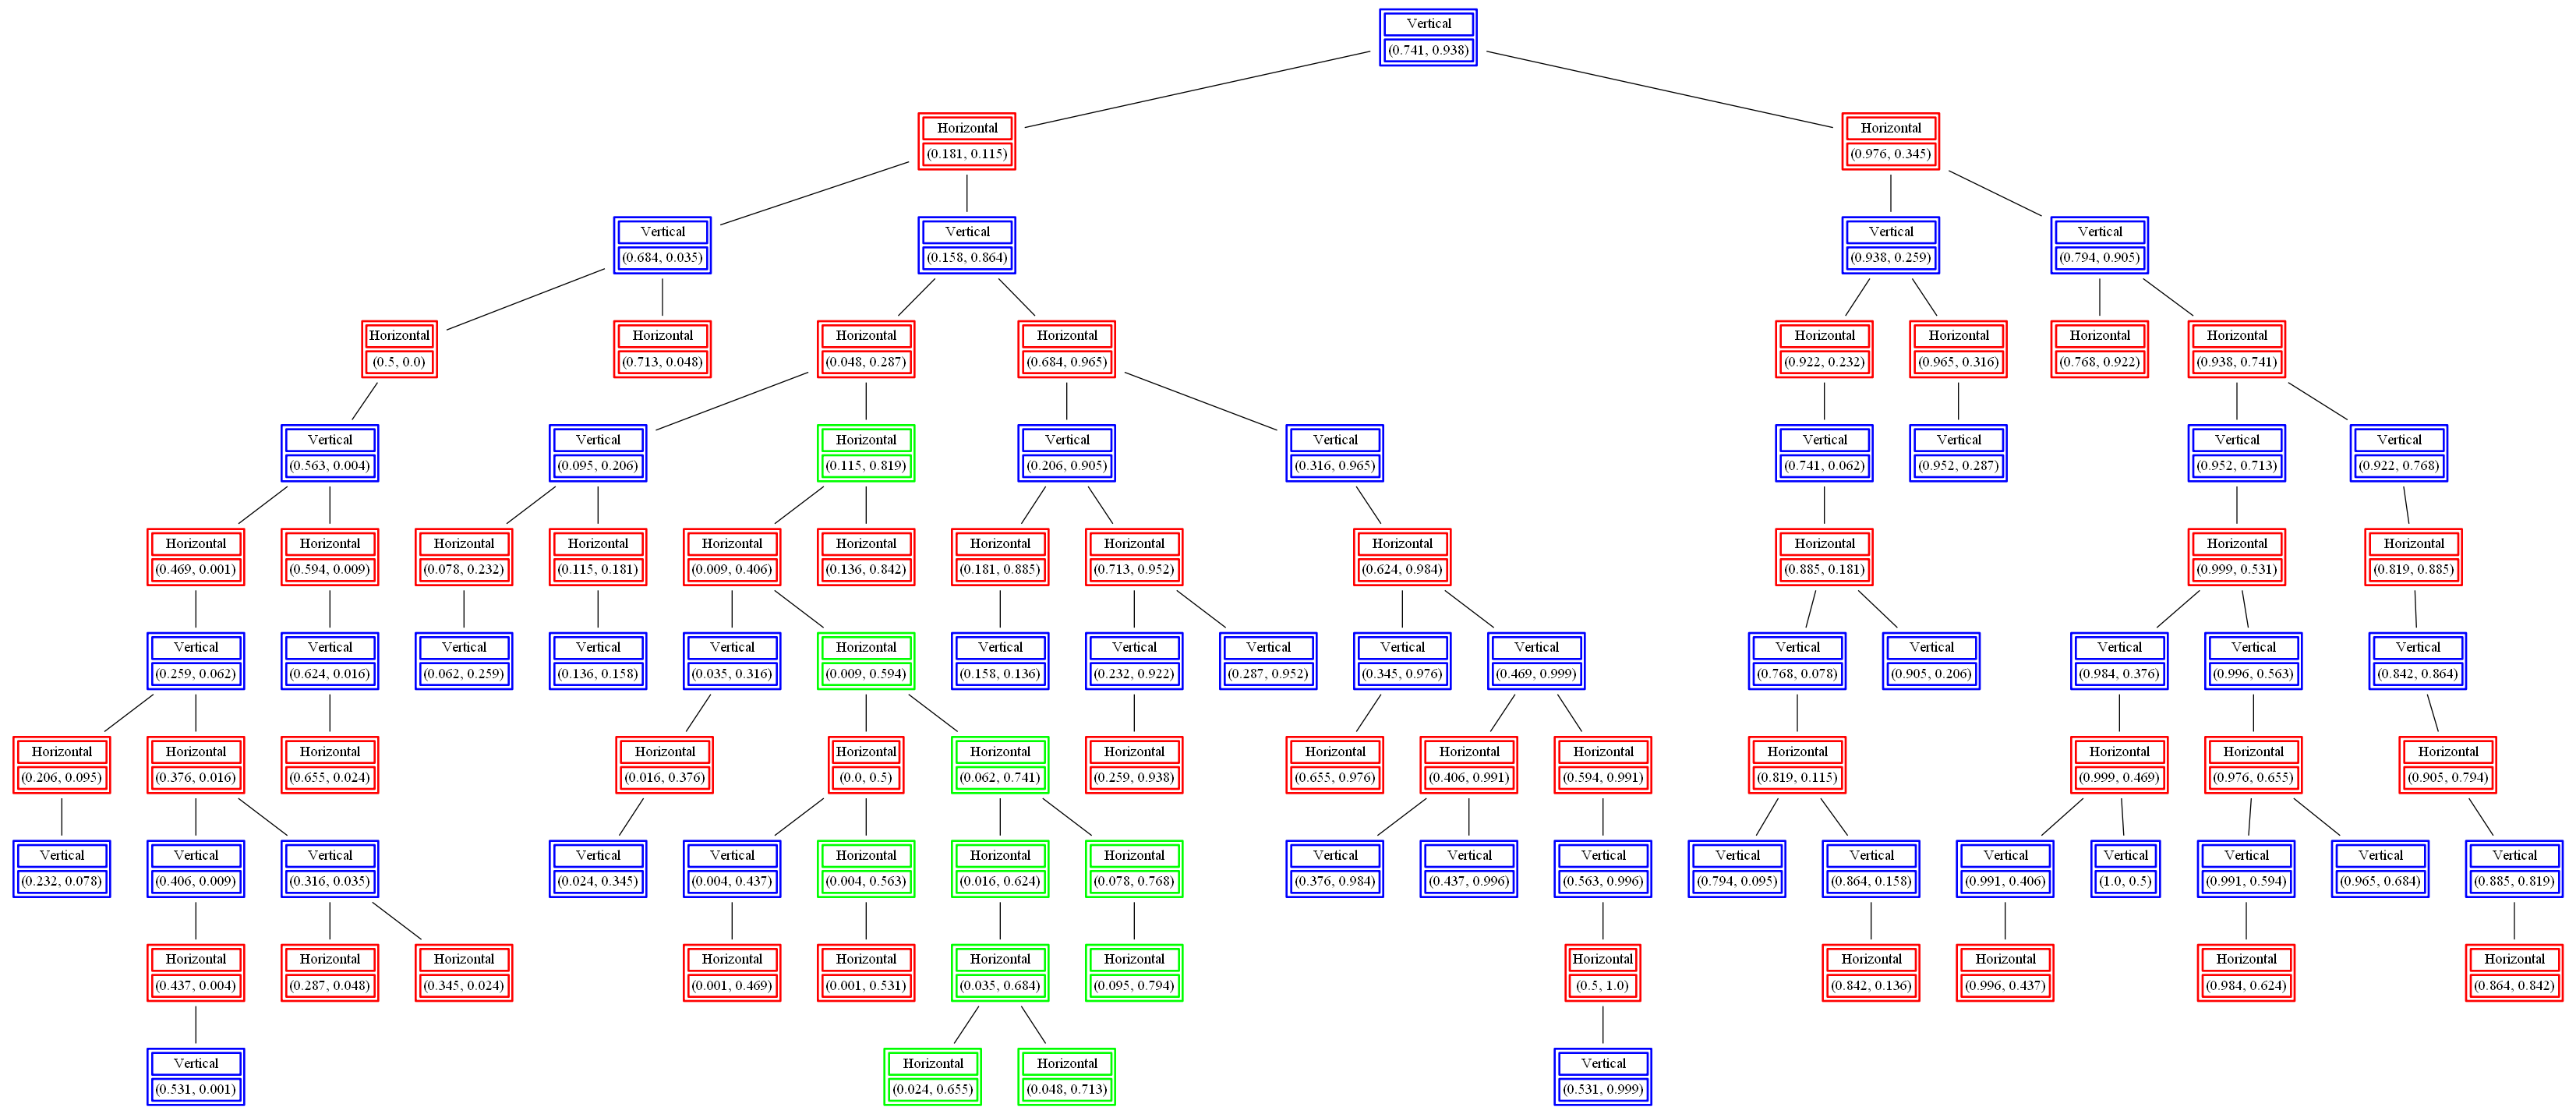 Implementing kd-tree for fast range-search, nearest-neighbor